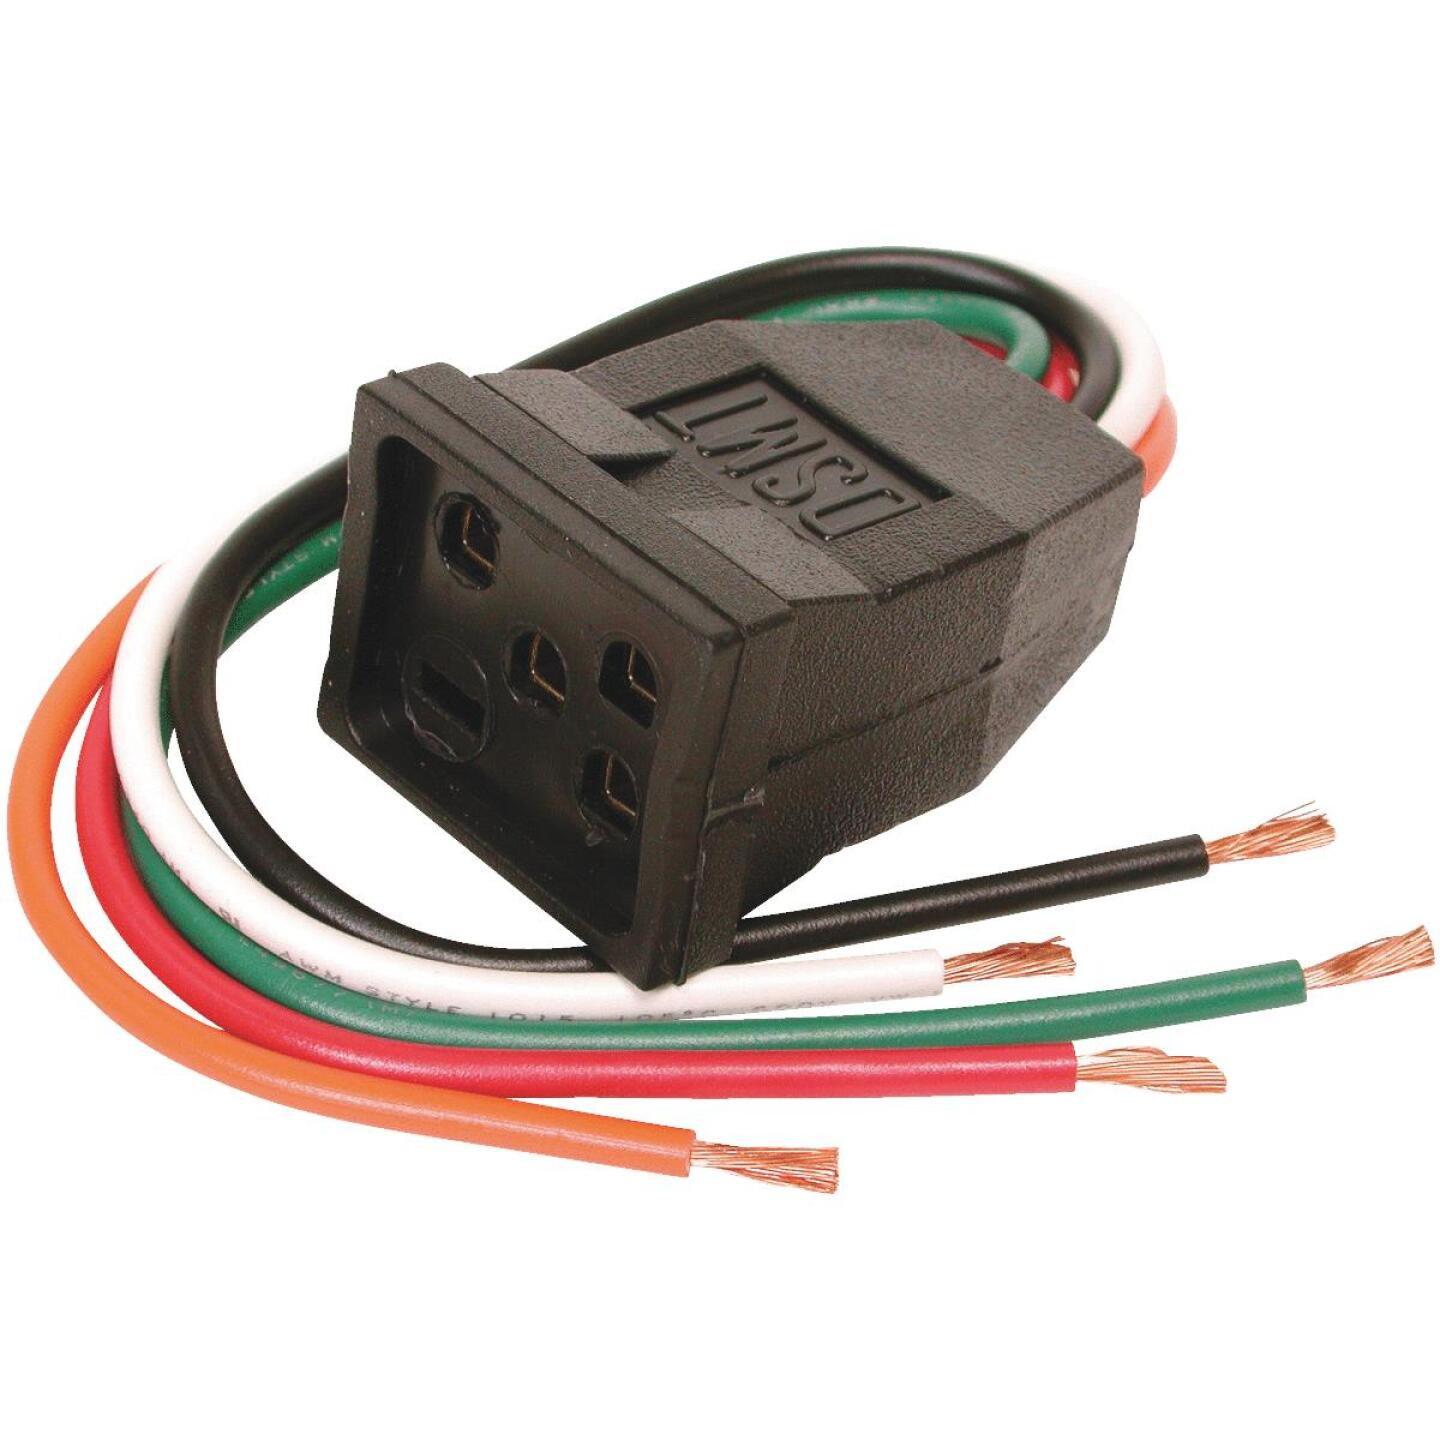 Dial 115V & 230V/15A Pigtail Motor Receptacle for 1 or 2-Speed Motors up to 1 HP Image 1